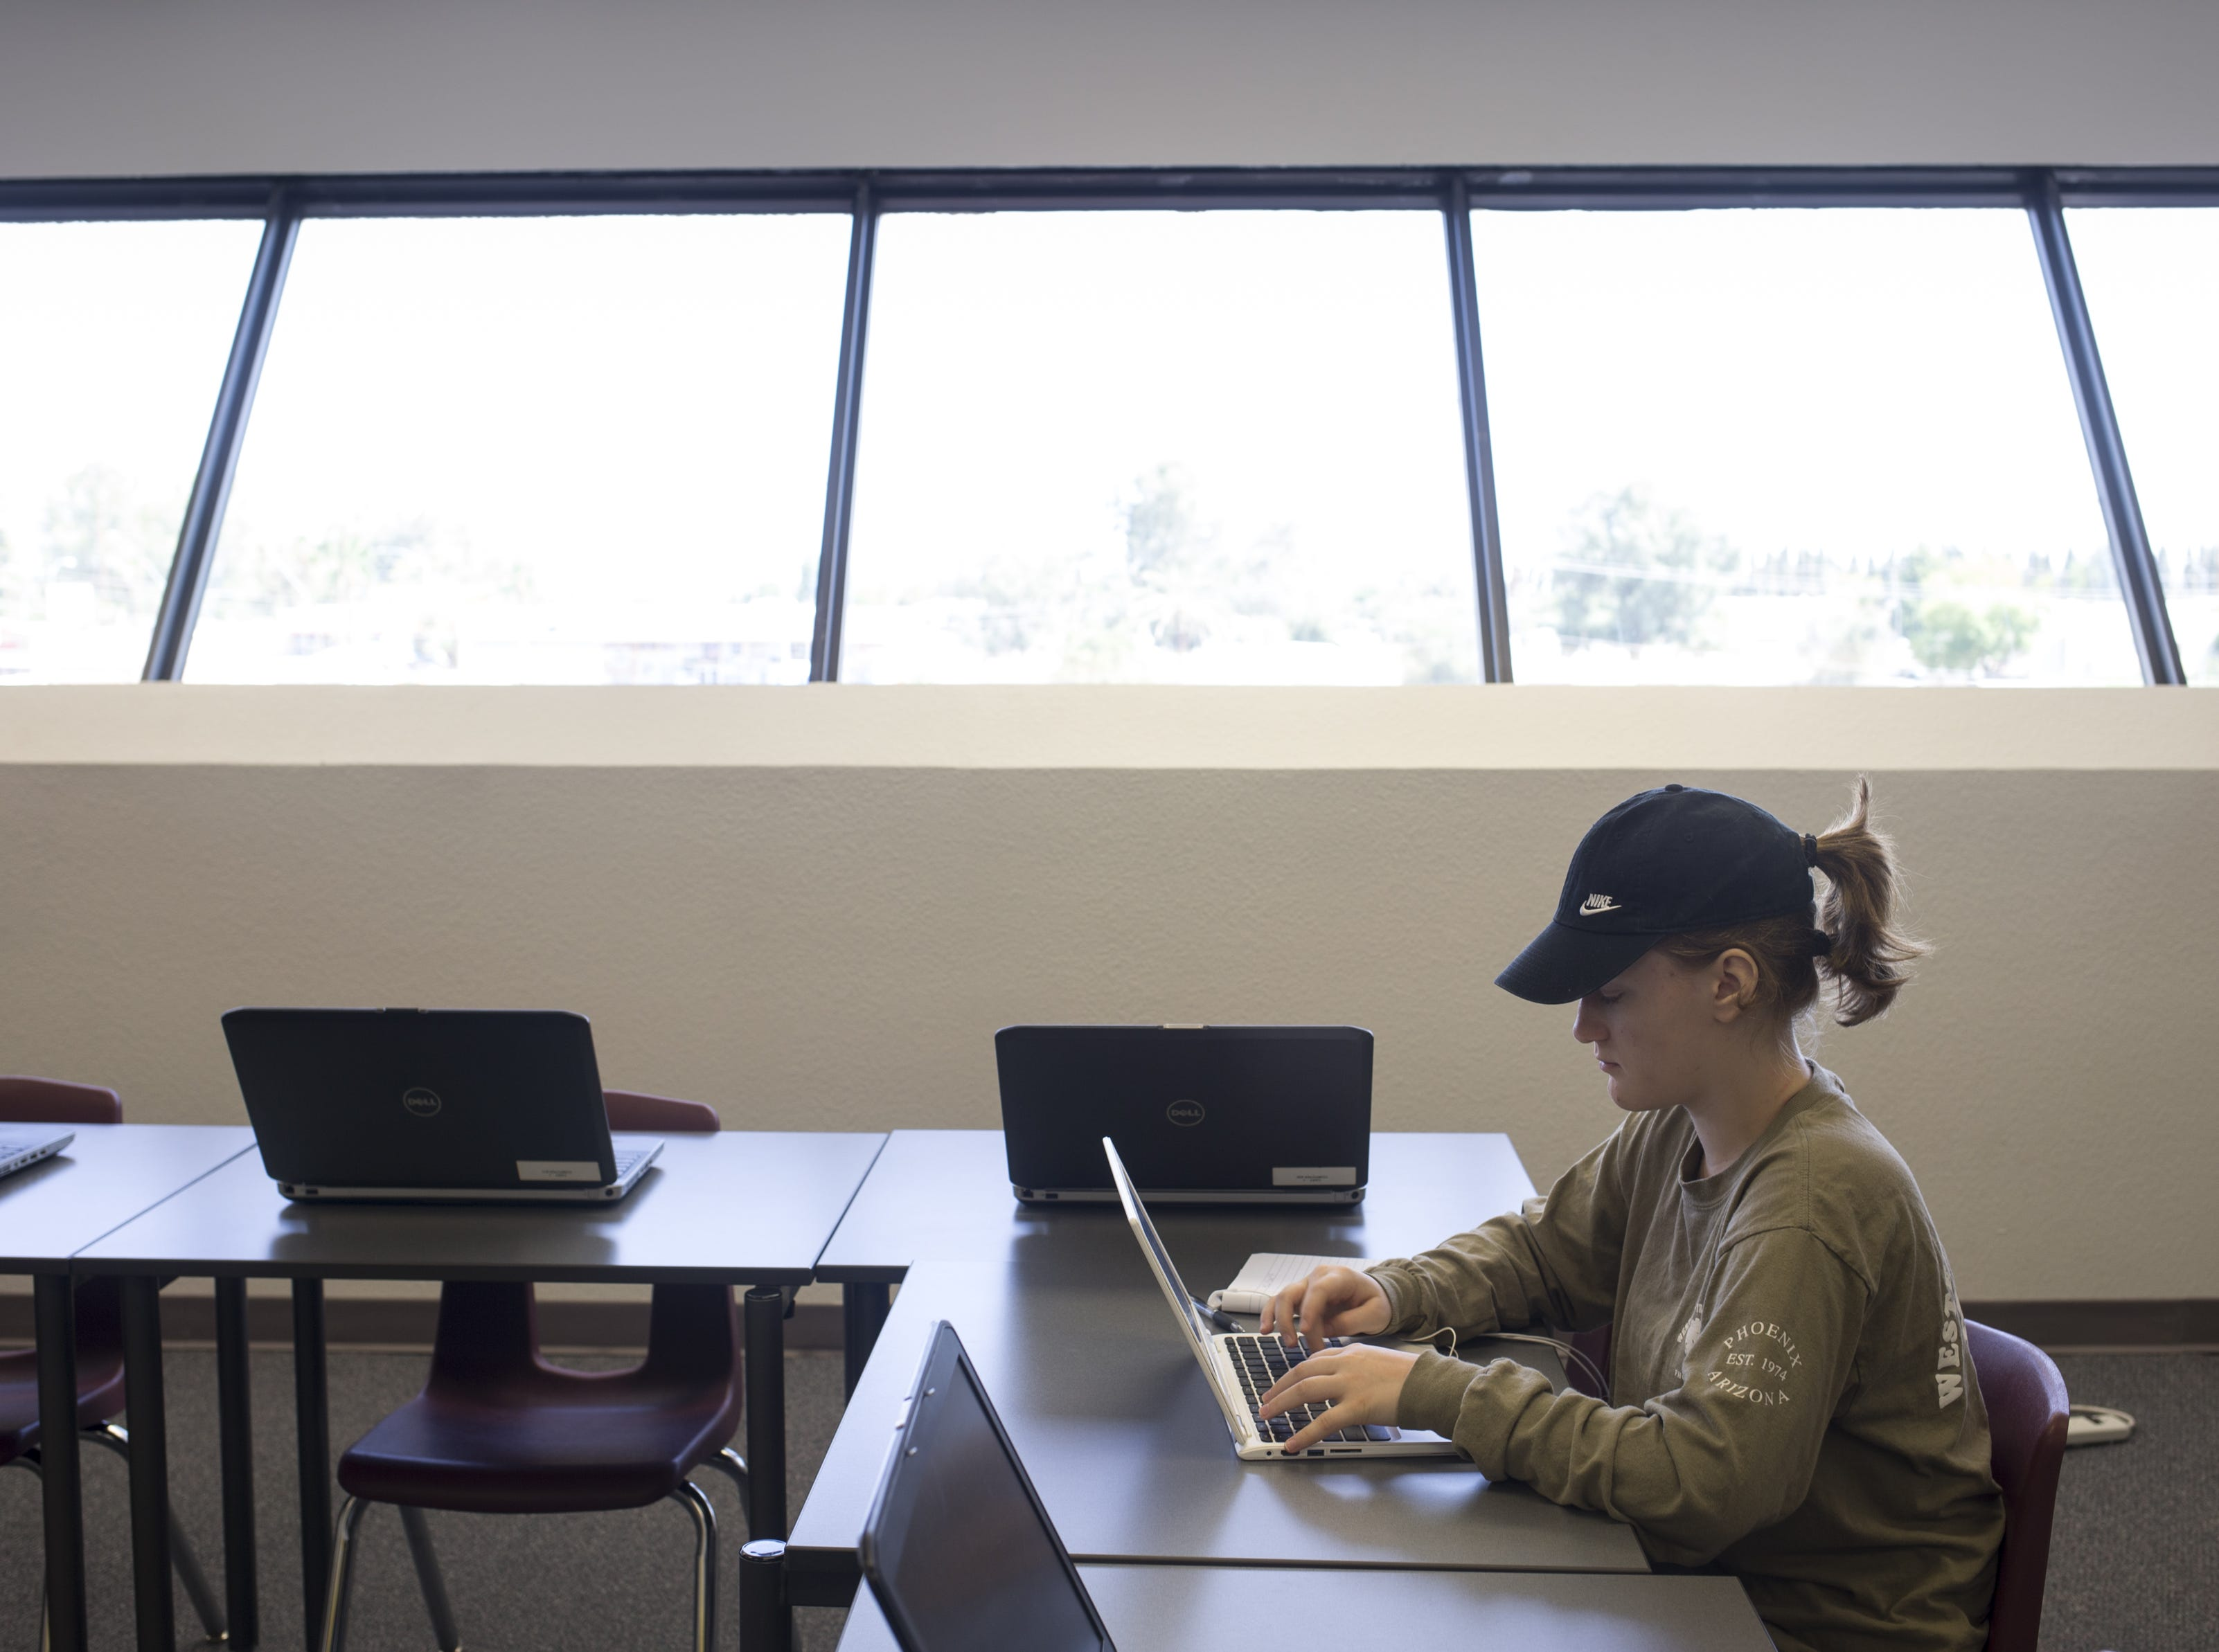 Leilene Pyper works in the open computer lab in the Mesa Public Schools Student Services building on Aug. 1, 2018.